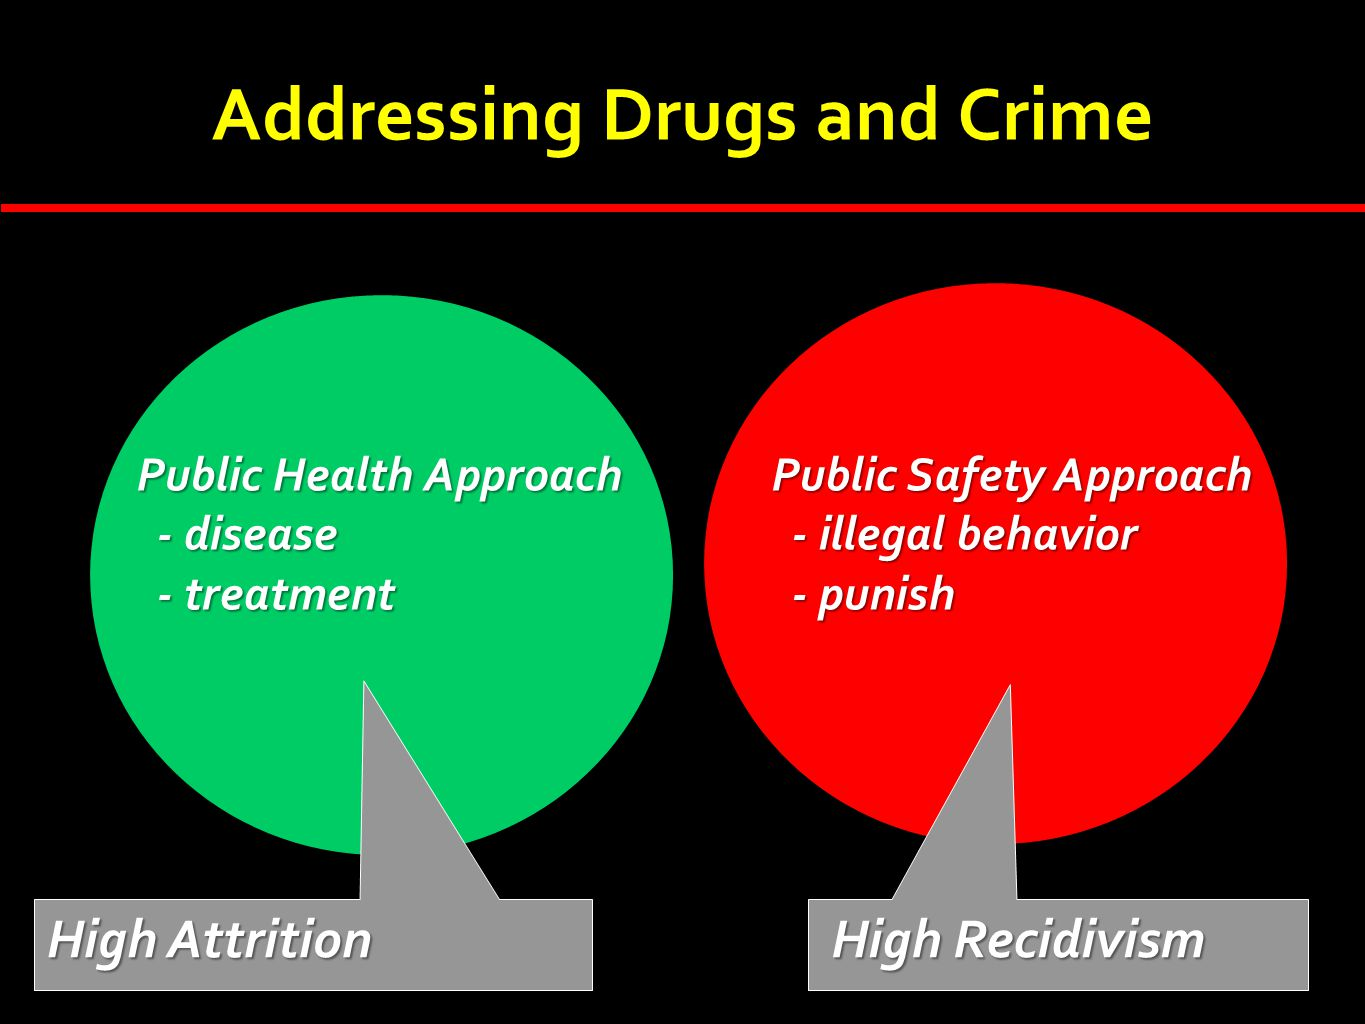 Addressing Drugs and Crime